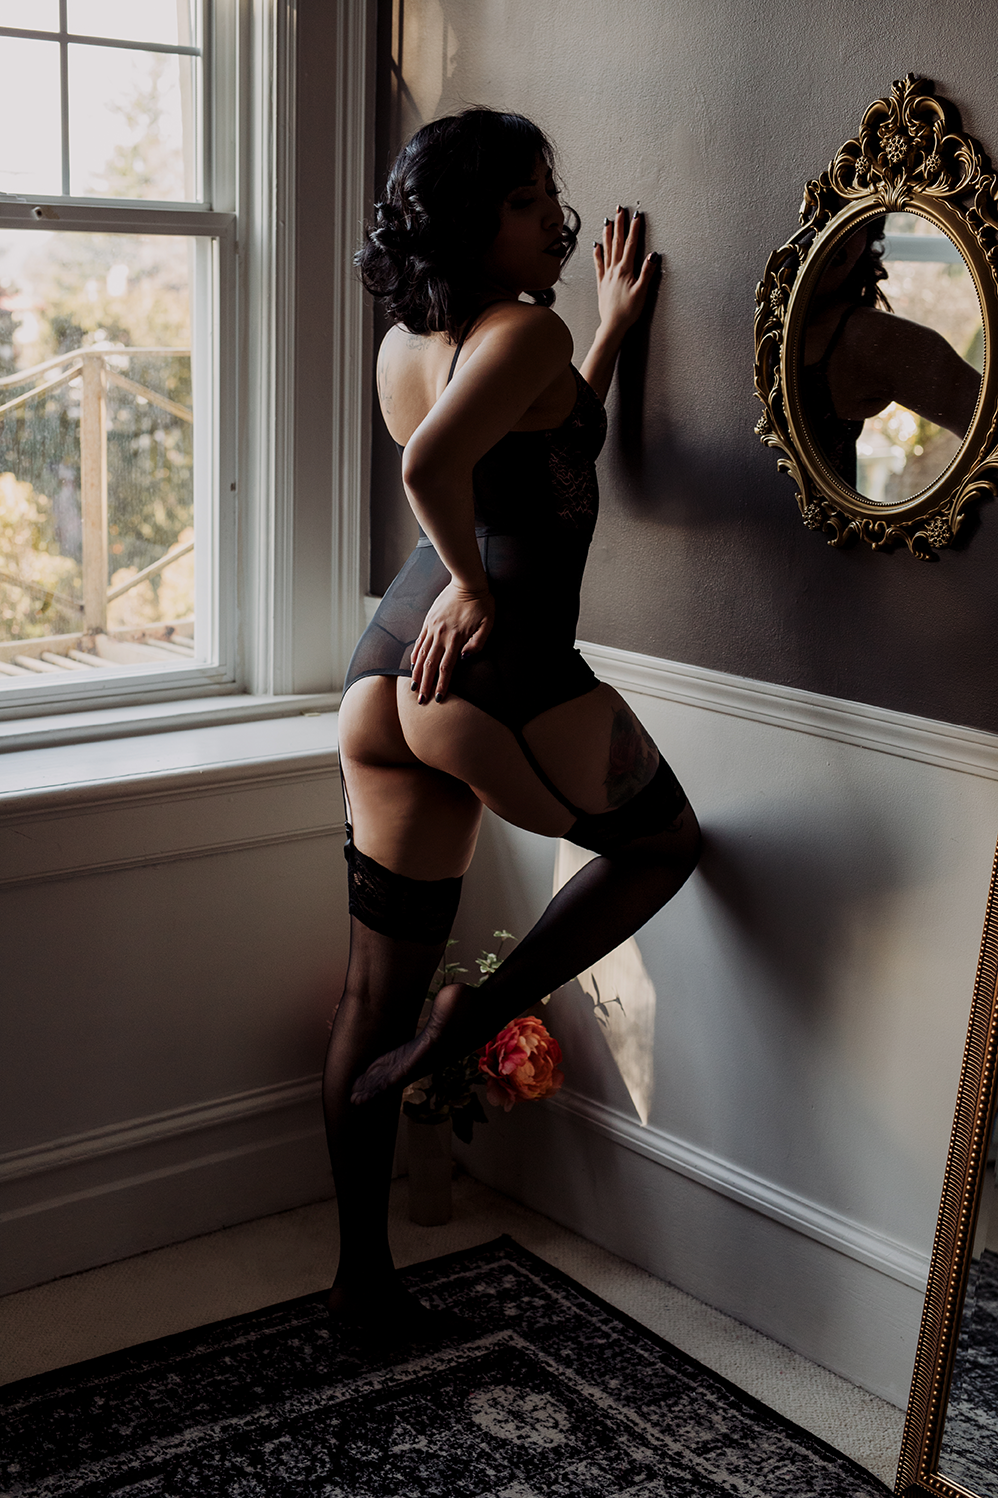 Vancouver-Island-Boudoir-Photography-10.png